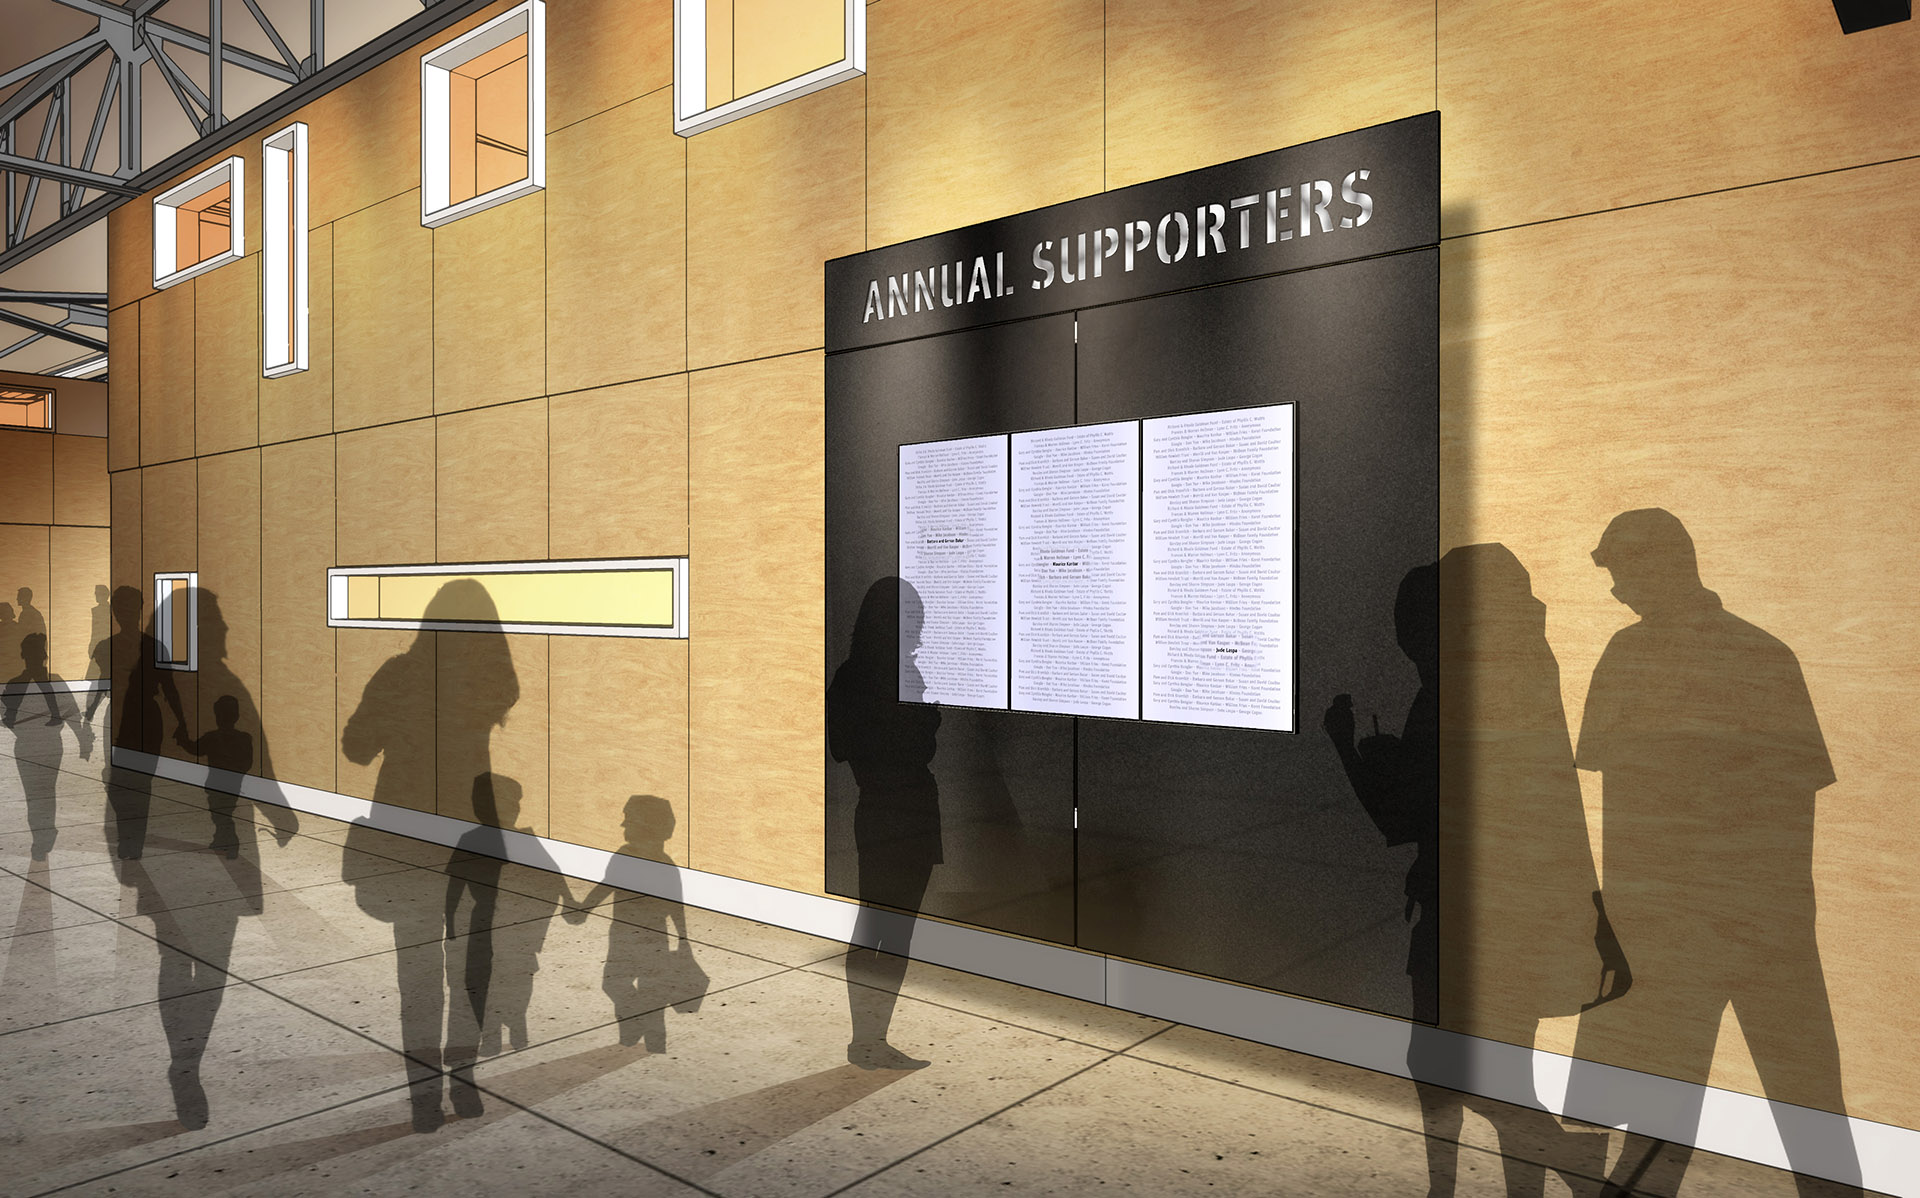 Exploratorium Annual Supporters Wall